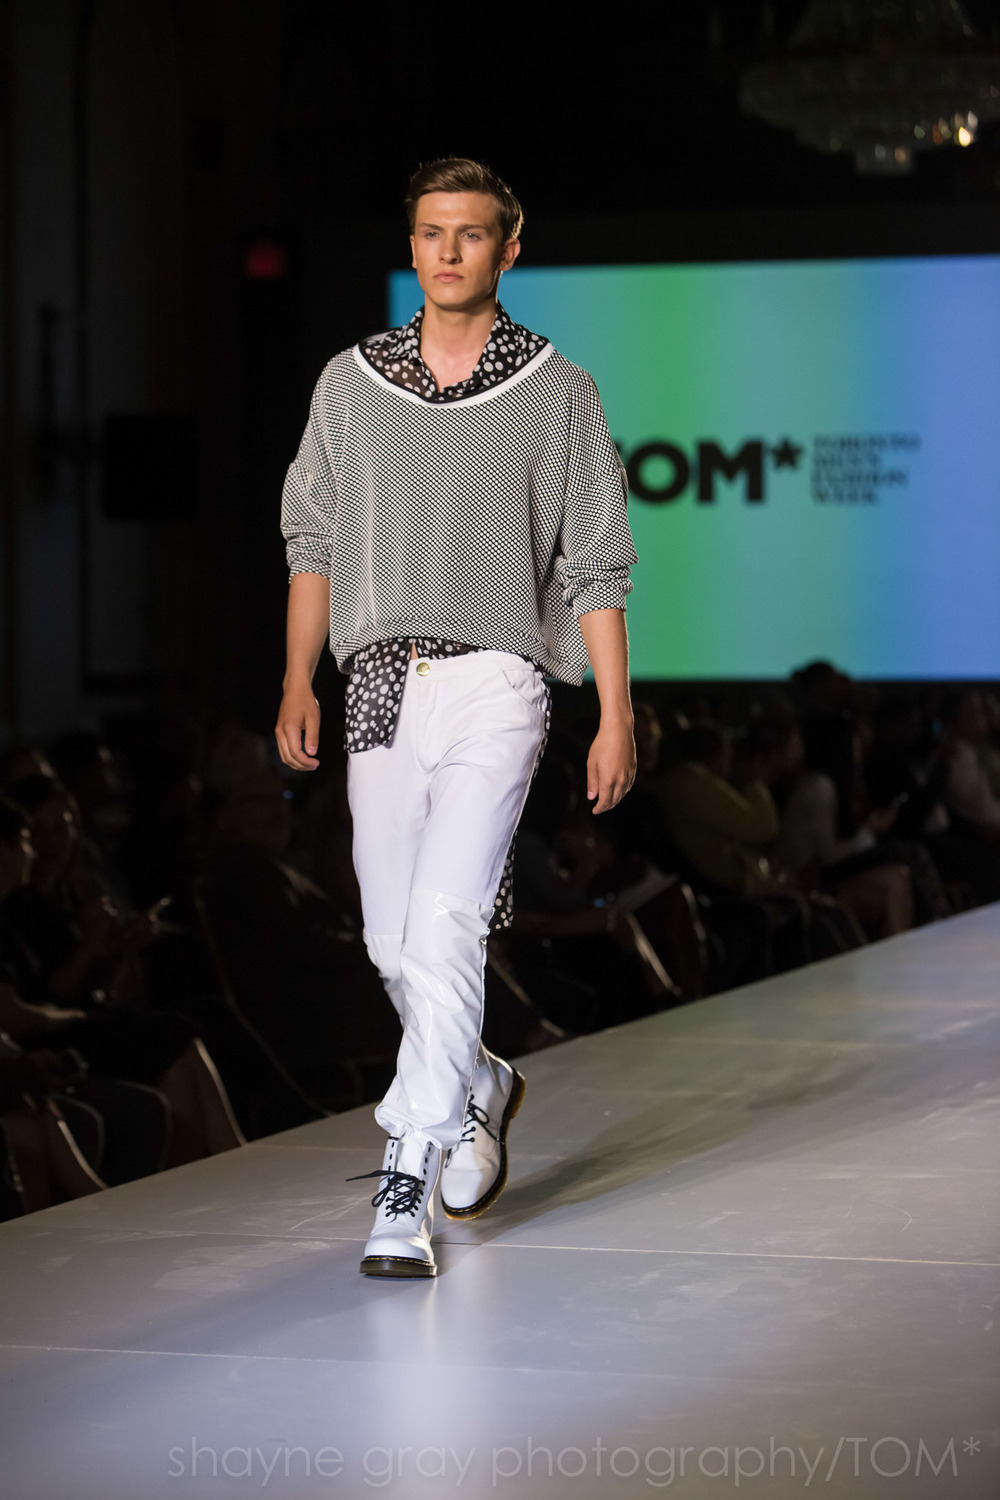 Shayne-Gray-Toronto-men's-fashion_week-TOM-worth-by-david-c-wigley-6240.jpg